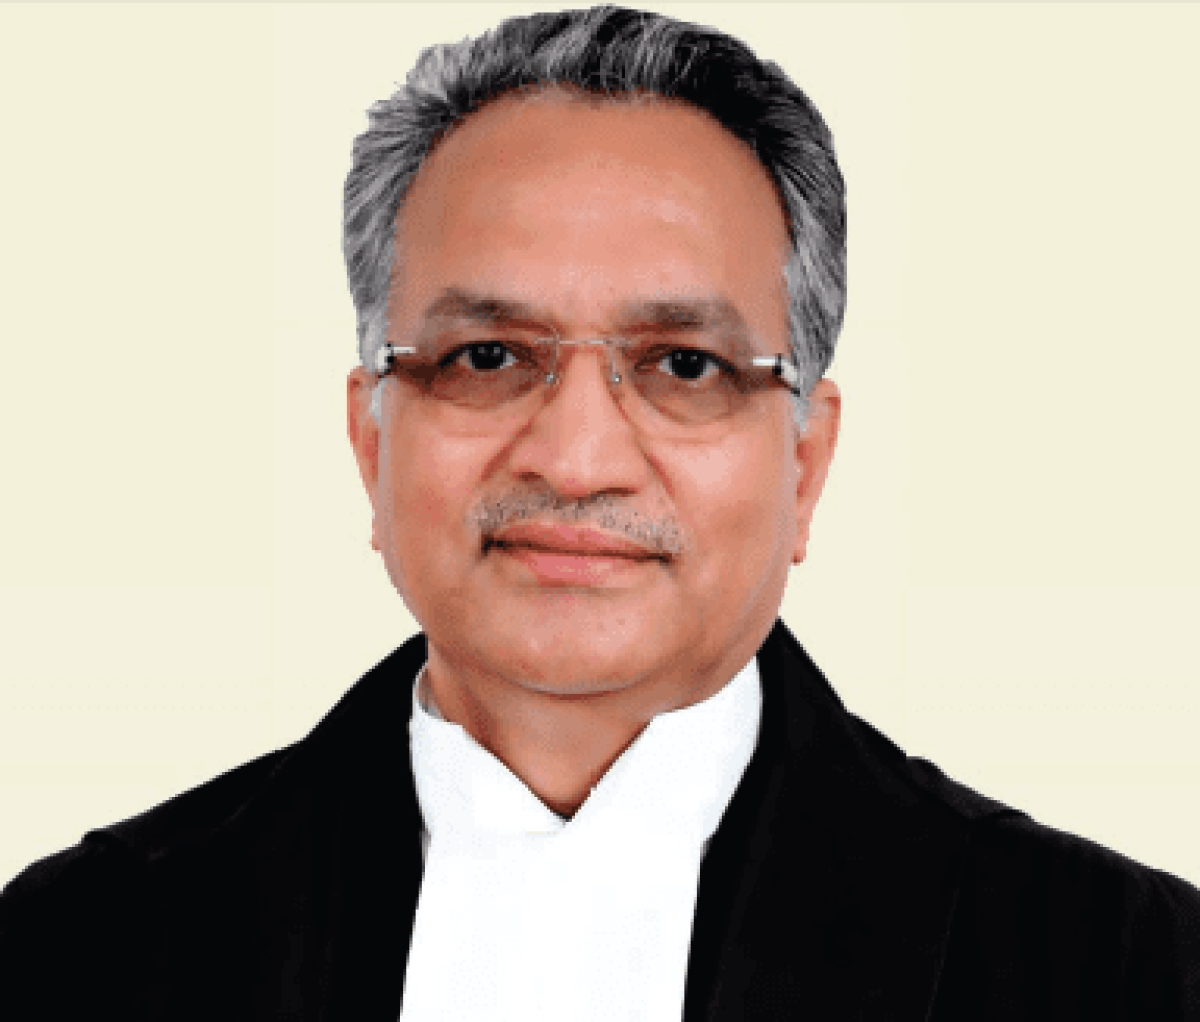 Justice AM Khanwilkar of the Supreme Court